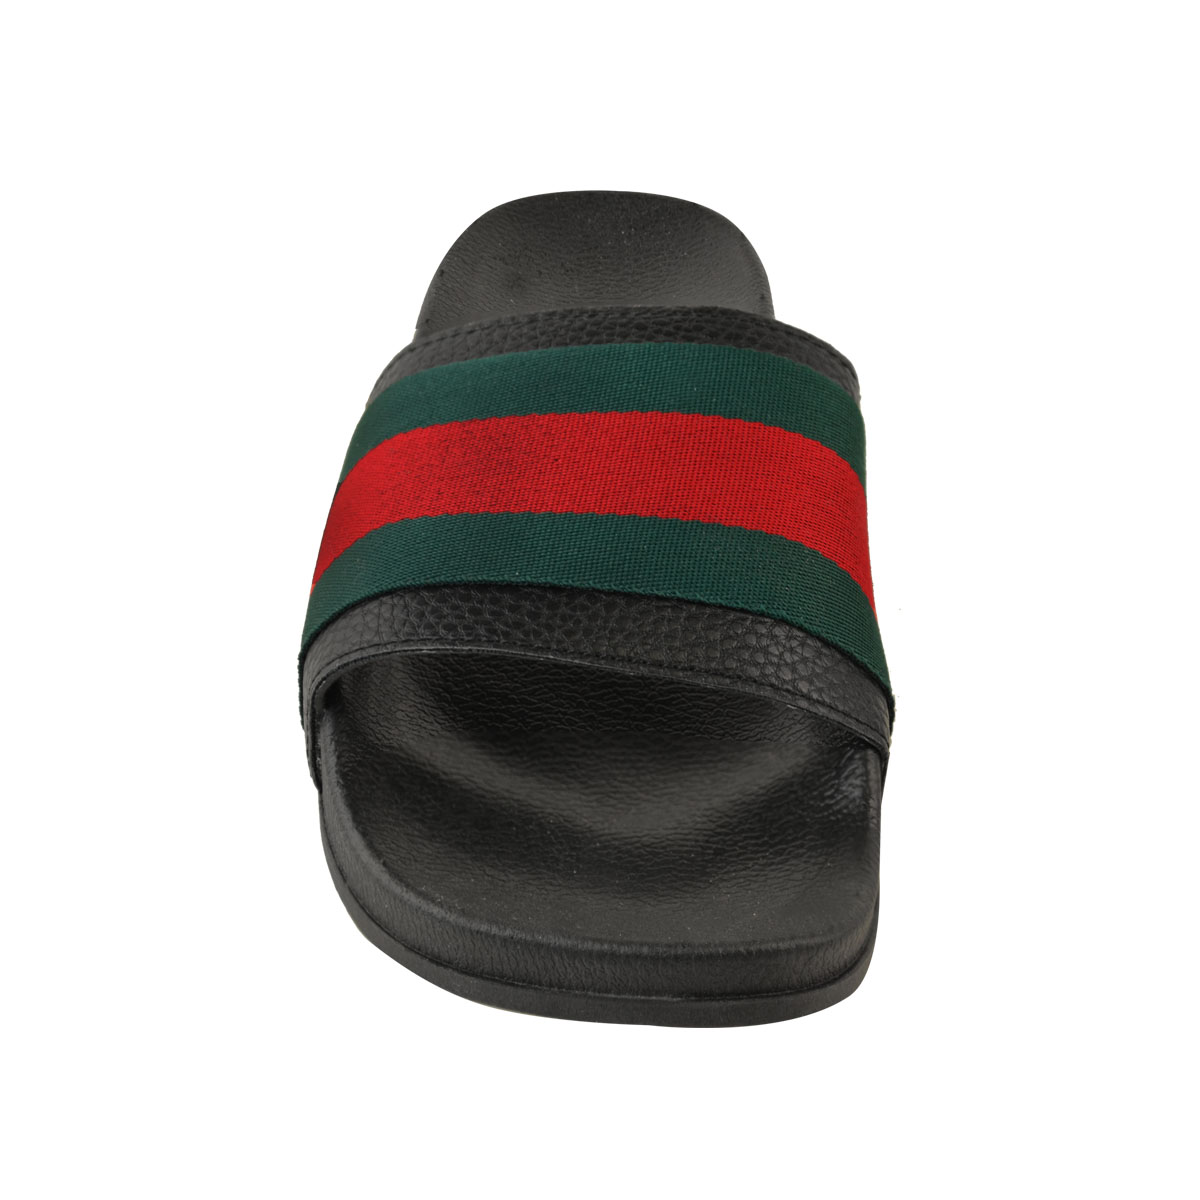 Womens-Ladies-Flat-Striped-Sliders-Summer-Sandals-Slides-Mules-Slippers-Size thumbnail 6